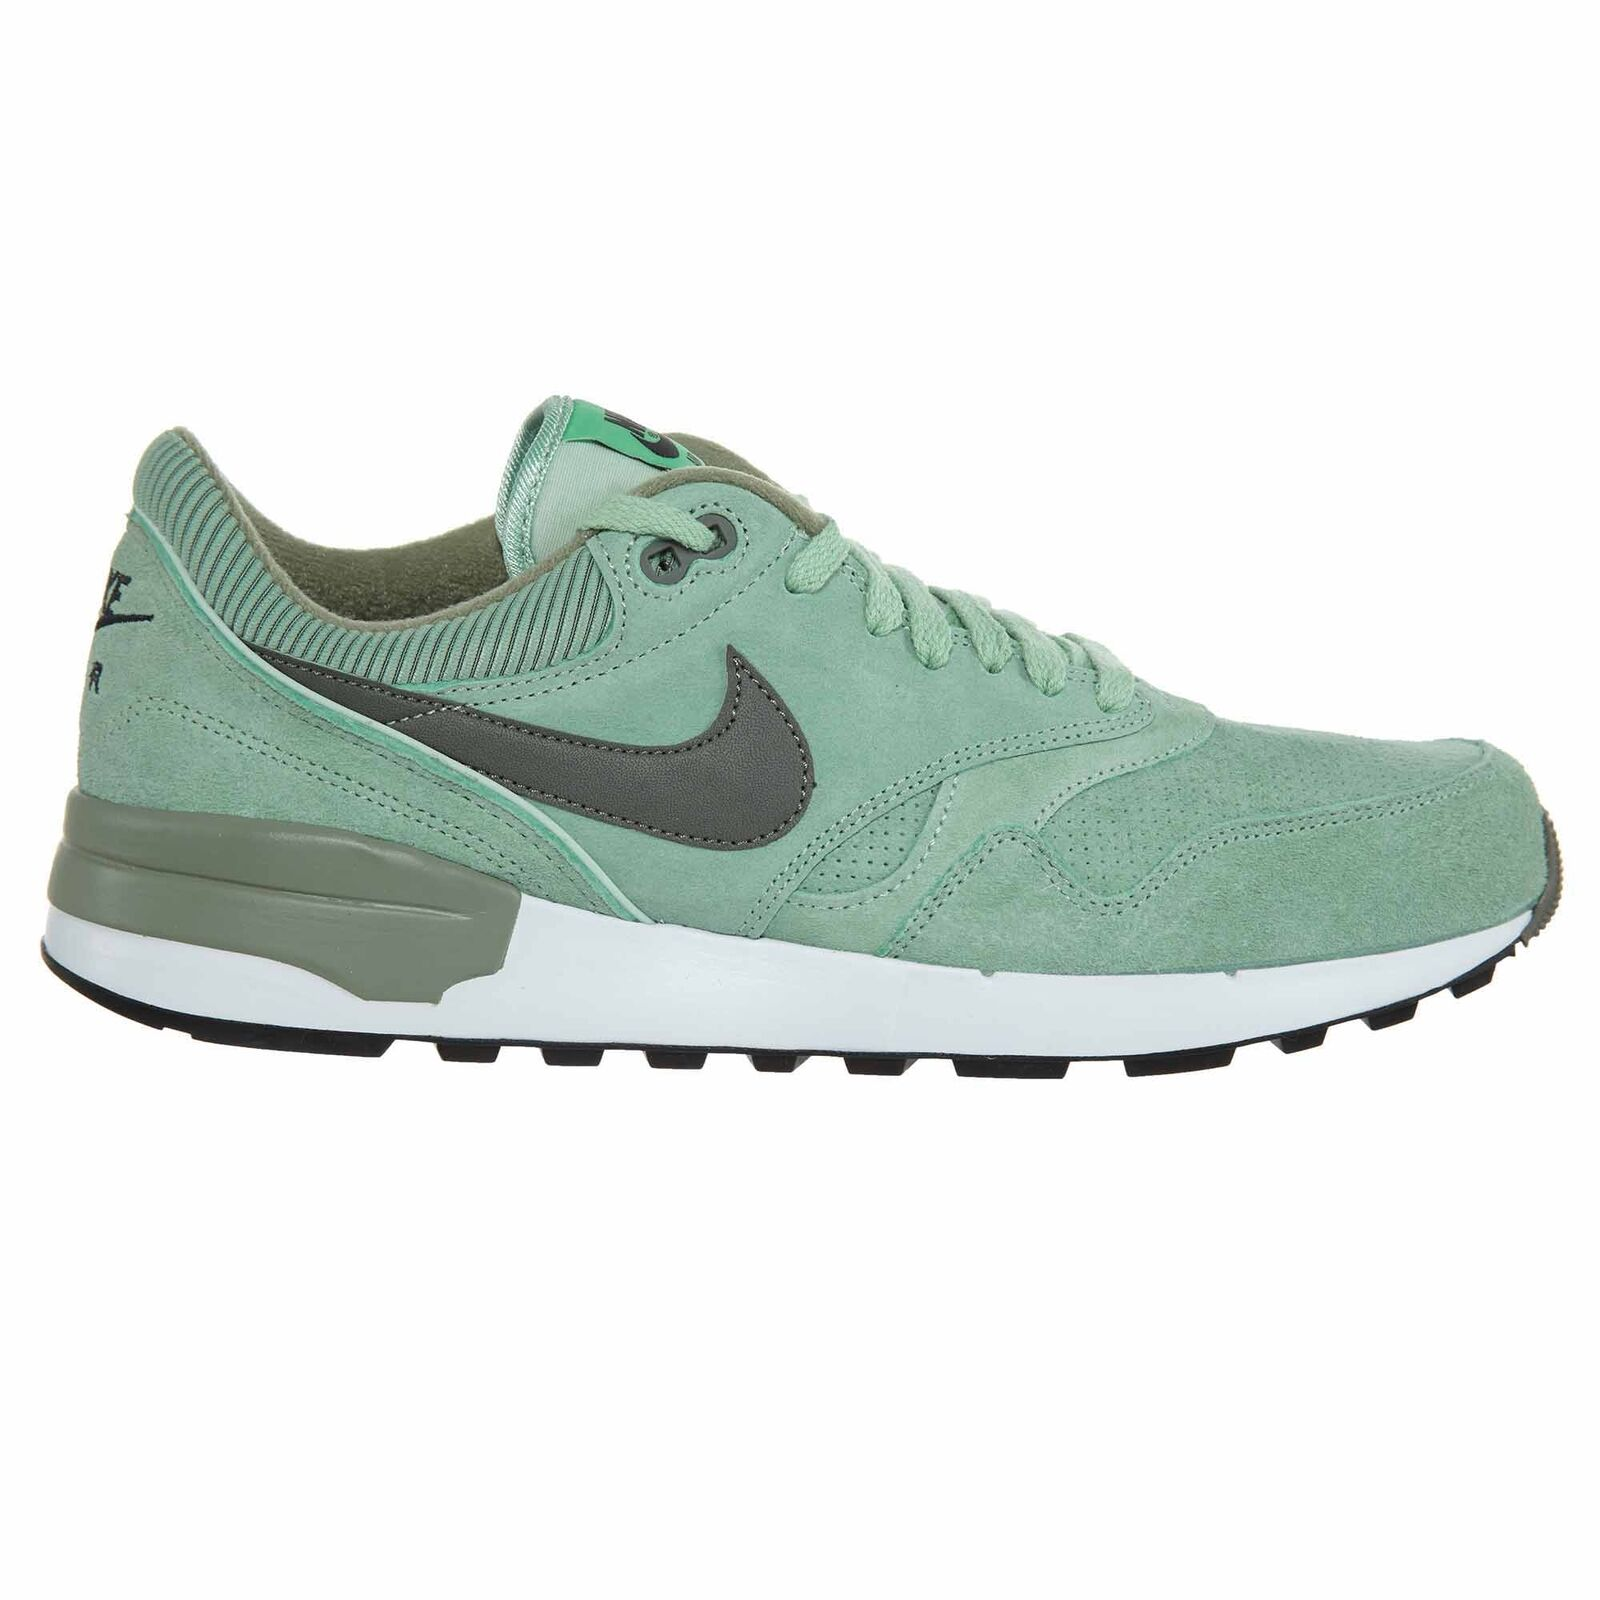 Nike Air Odyssey LTR Mens 684773-301 Enamel Green Suede Running shoes Size 7.5